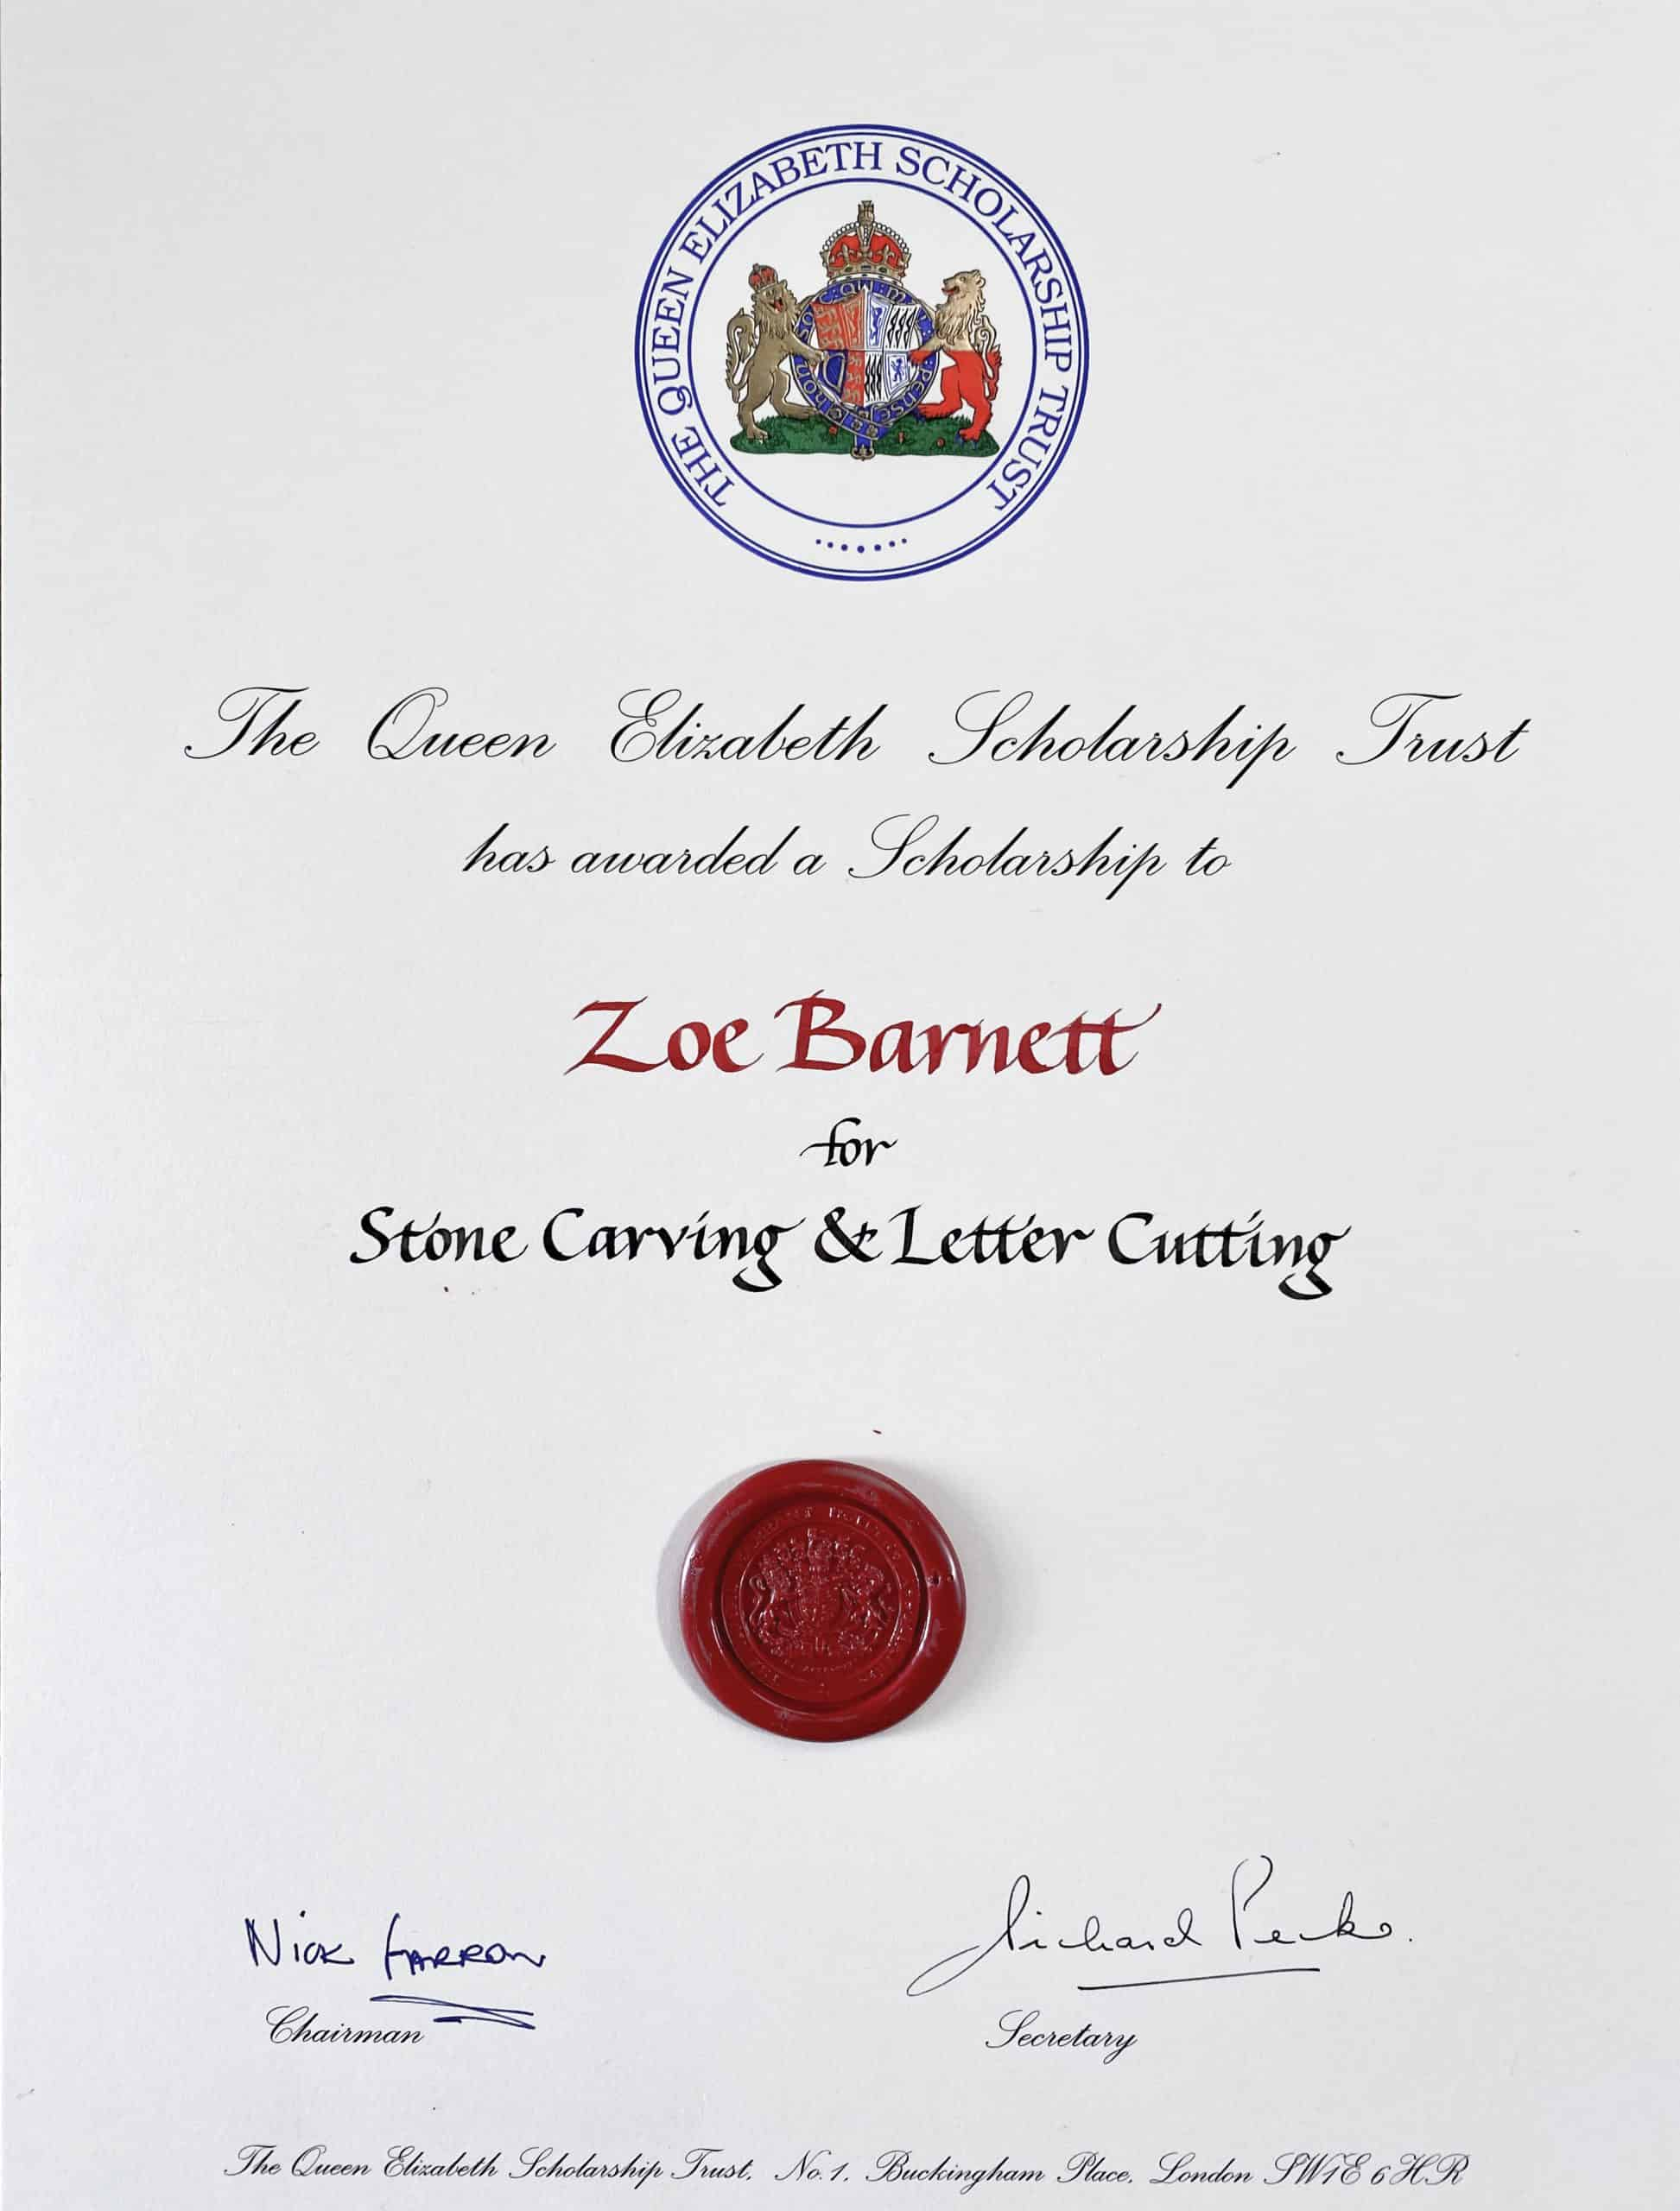 Certificated from the Queen Elizabeth Scholarship Trust awarding Zoe Barnett a scholarship